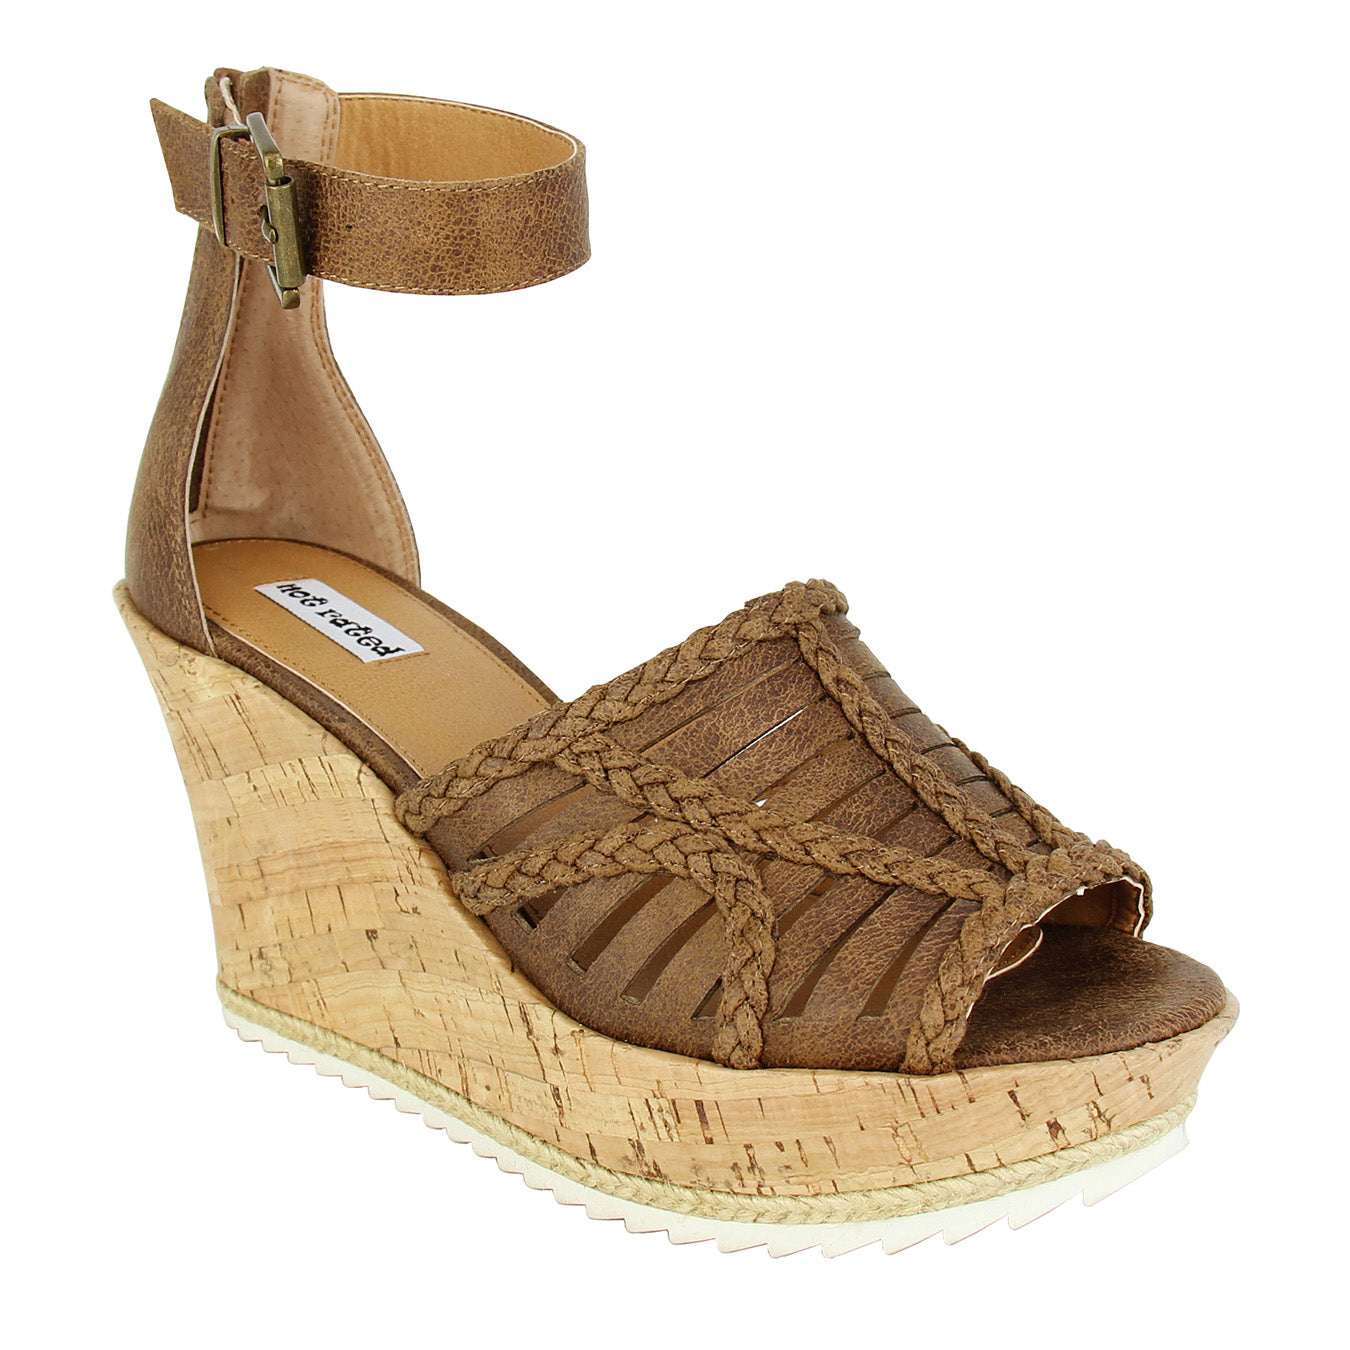 Not-Rated_wedge_caged_upper_zipper_ankle_strap_3.5 heel_tan_women